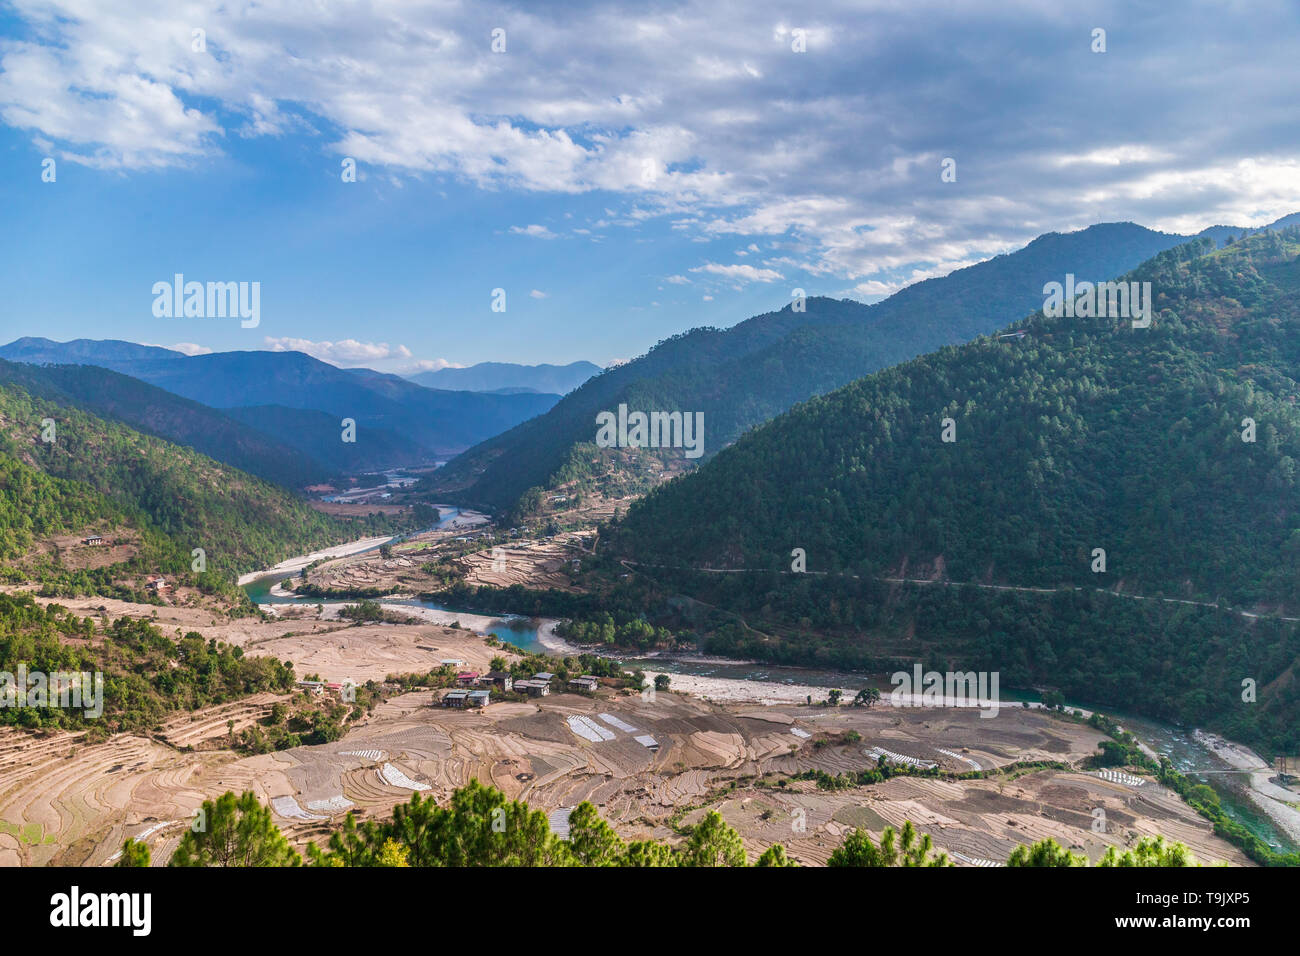 Valley in Bhutan near Punakha with rice fields and typical houses in winter - Stock Image